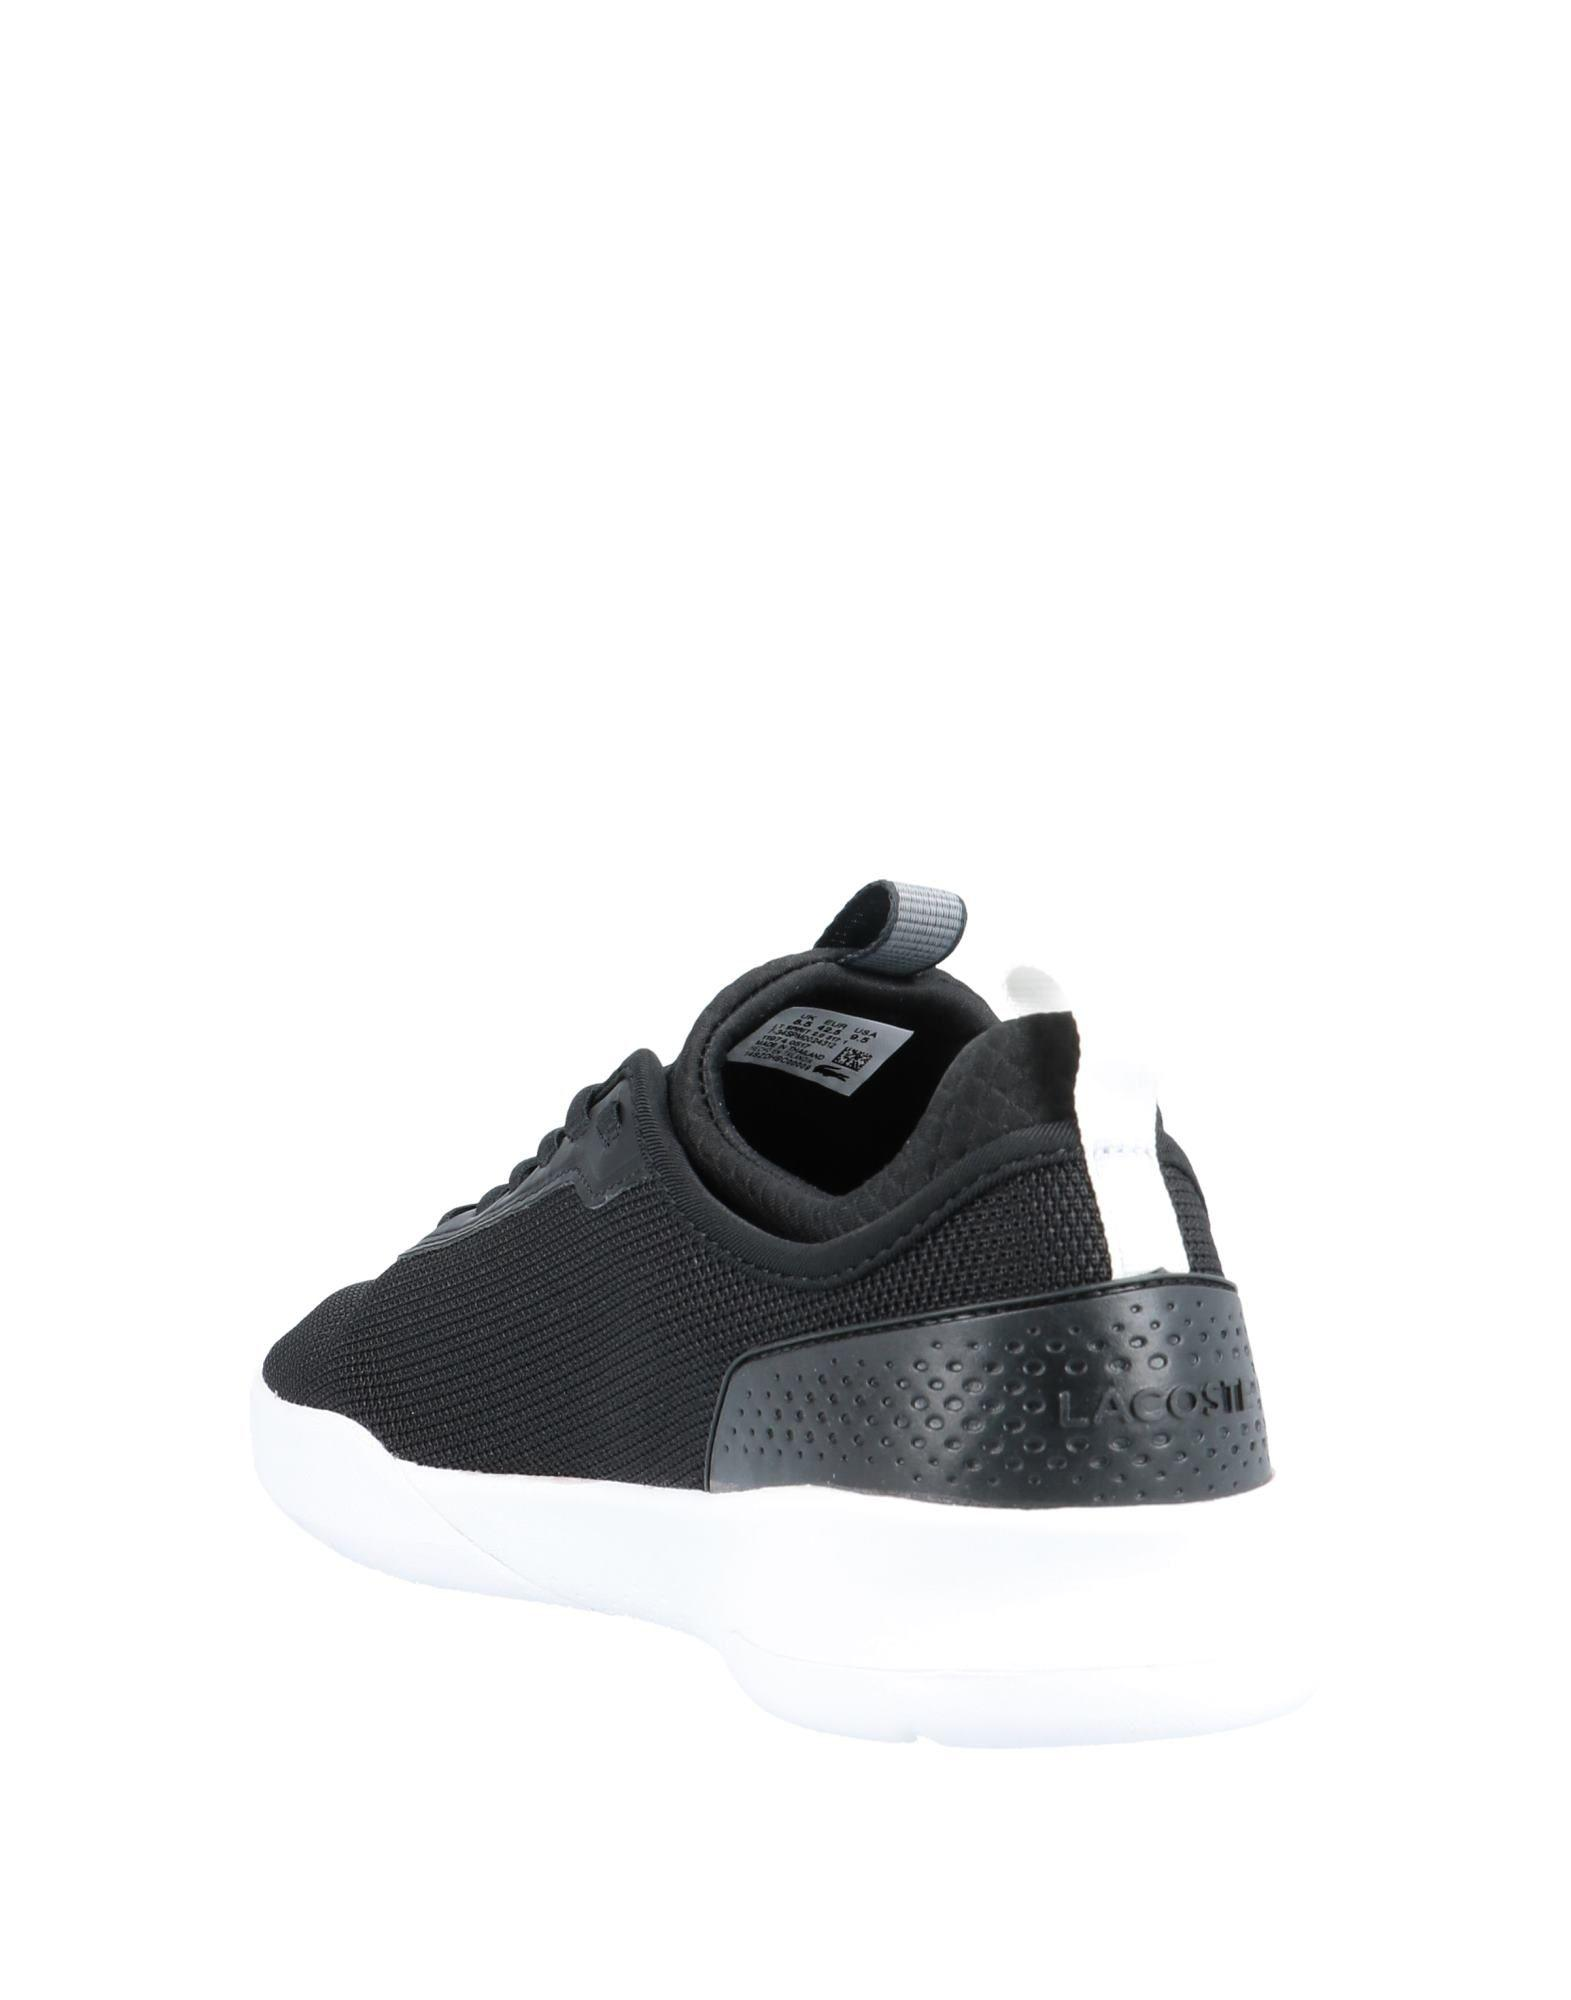 3902554d5dcbcc Lyst - Lacoste Sport Low-tops   Sneakers in Black for Men